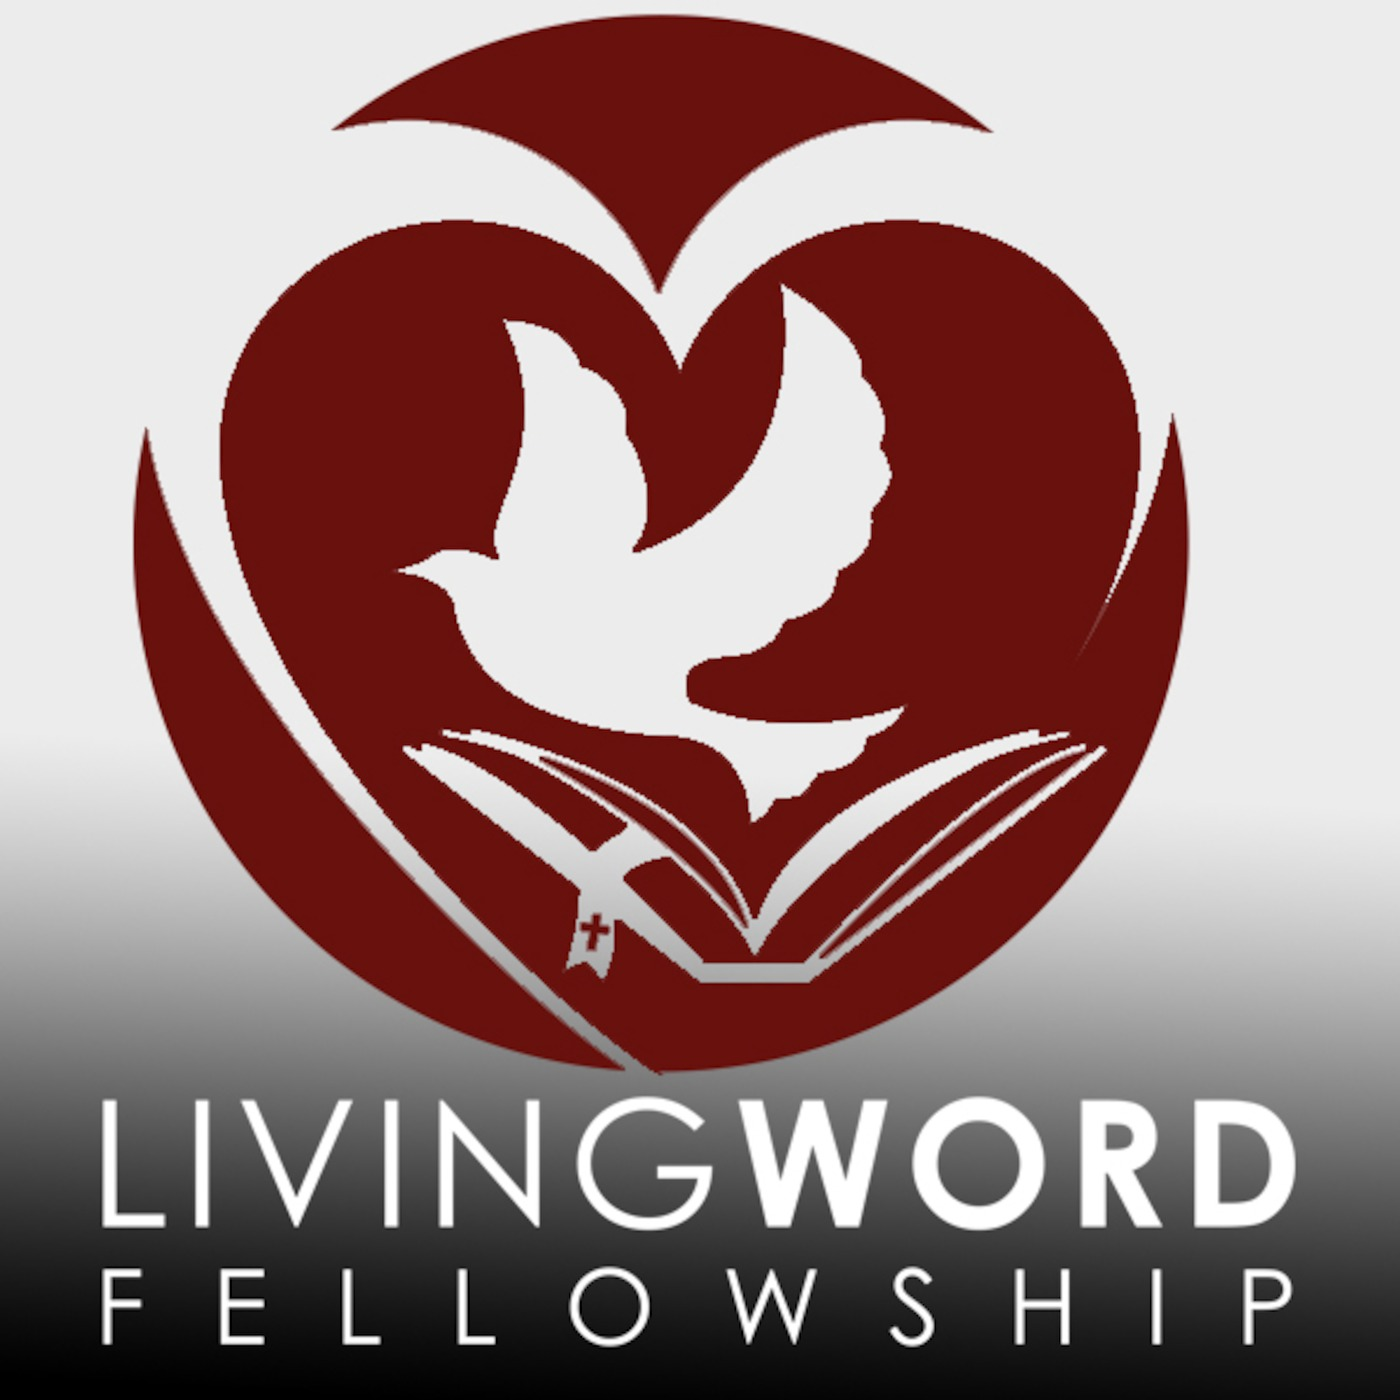 Living Word Fellowship | Loveland Ohio